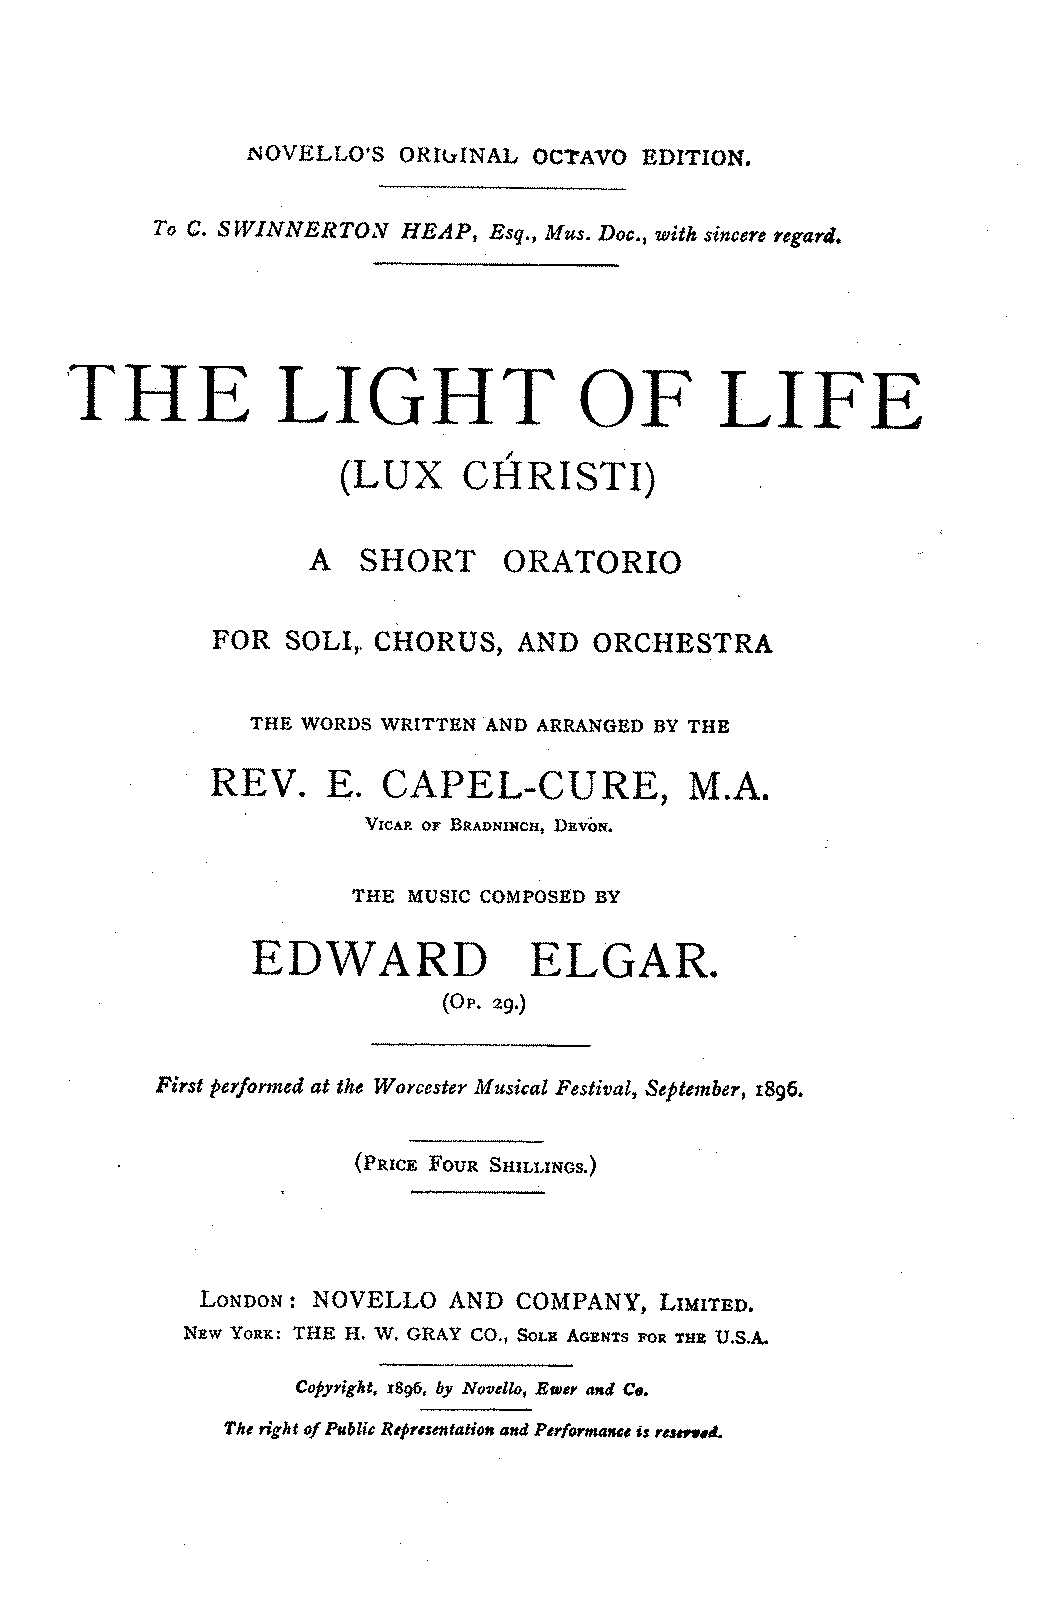 PMLP306248-Elgar The Light of Life (Lux Christi) Op29 (Vocal Score).pdf